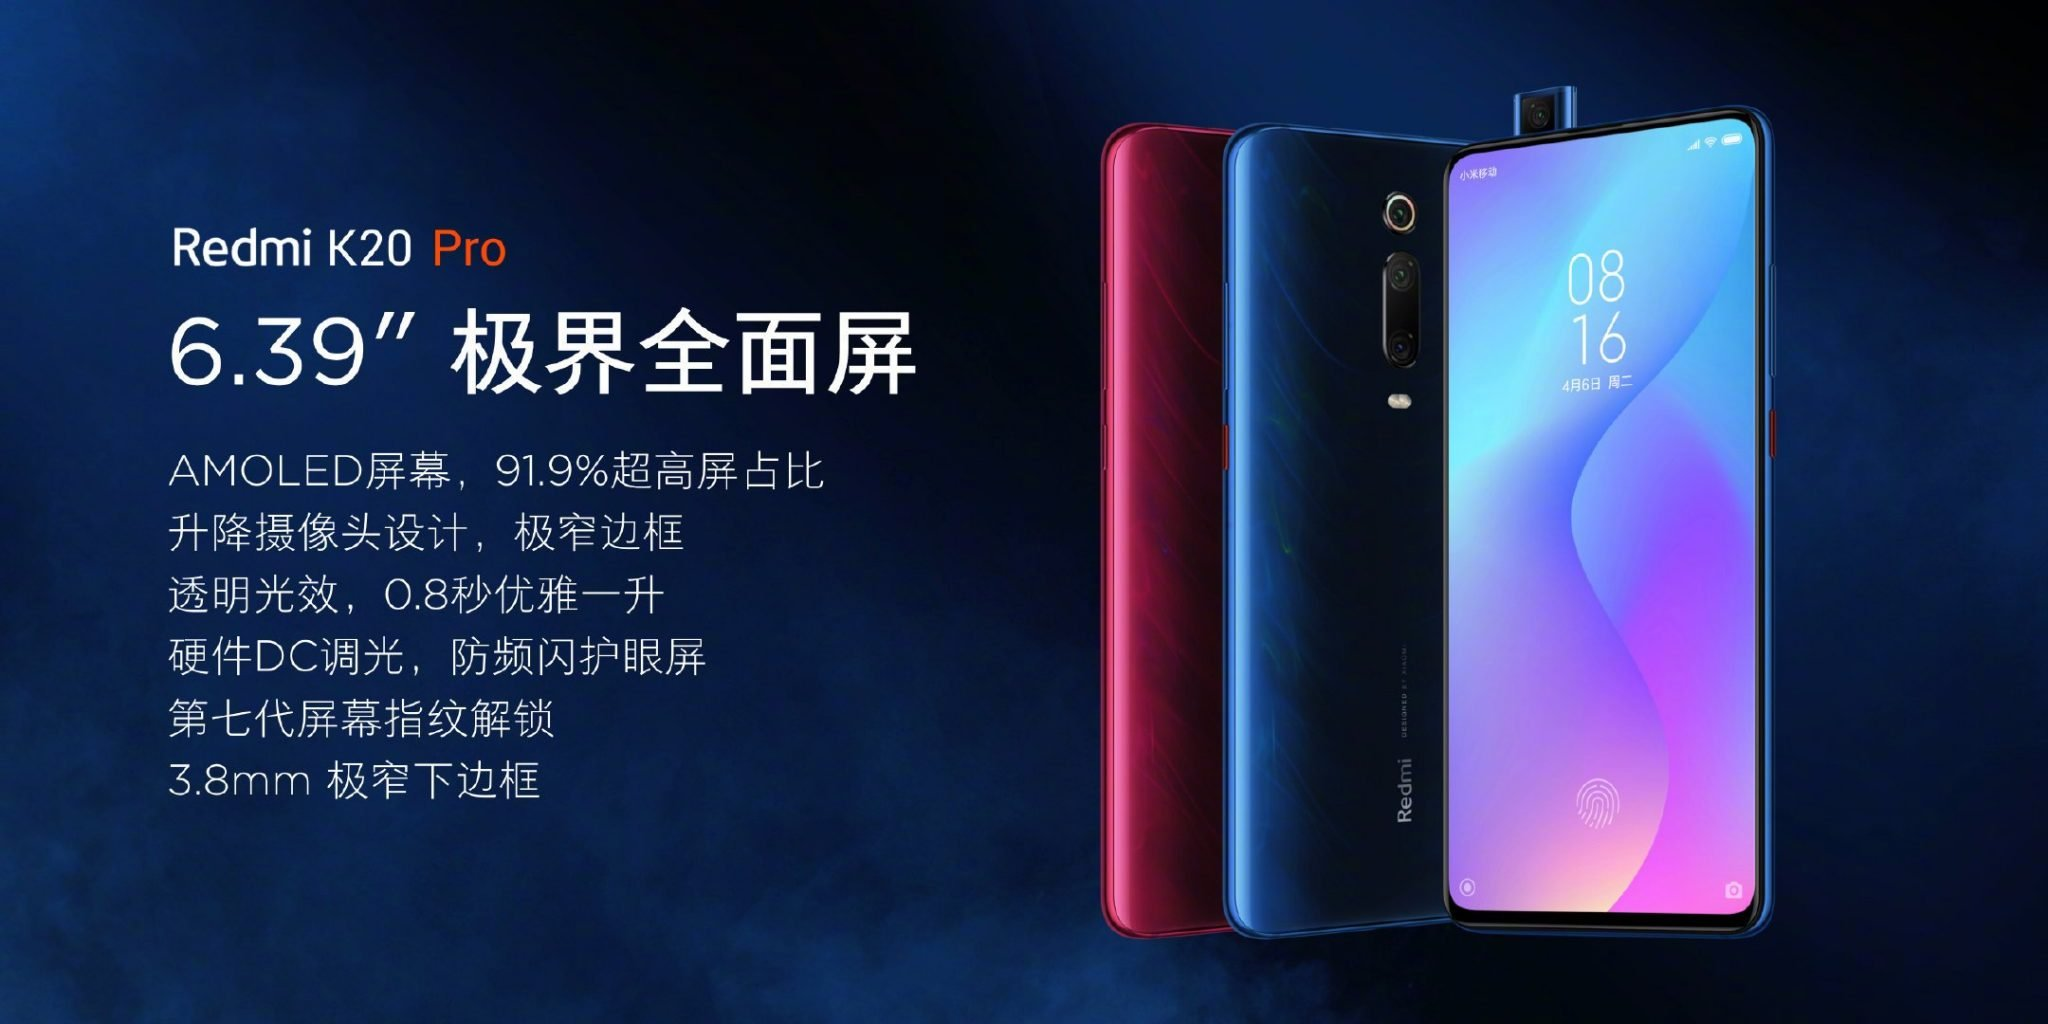 Xiaomi Mi 9T (Redmi K20 or Pocophone F2?) retail box spotted